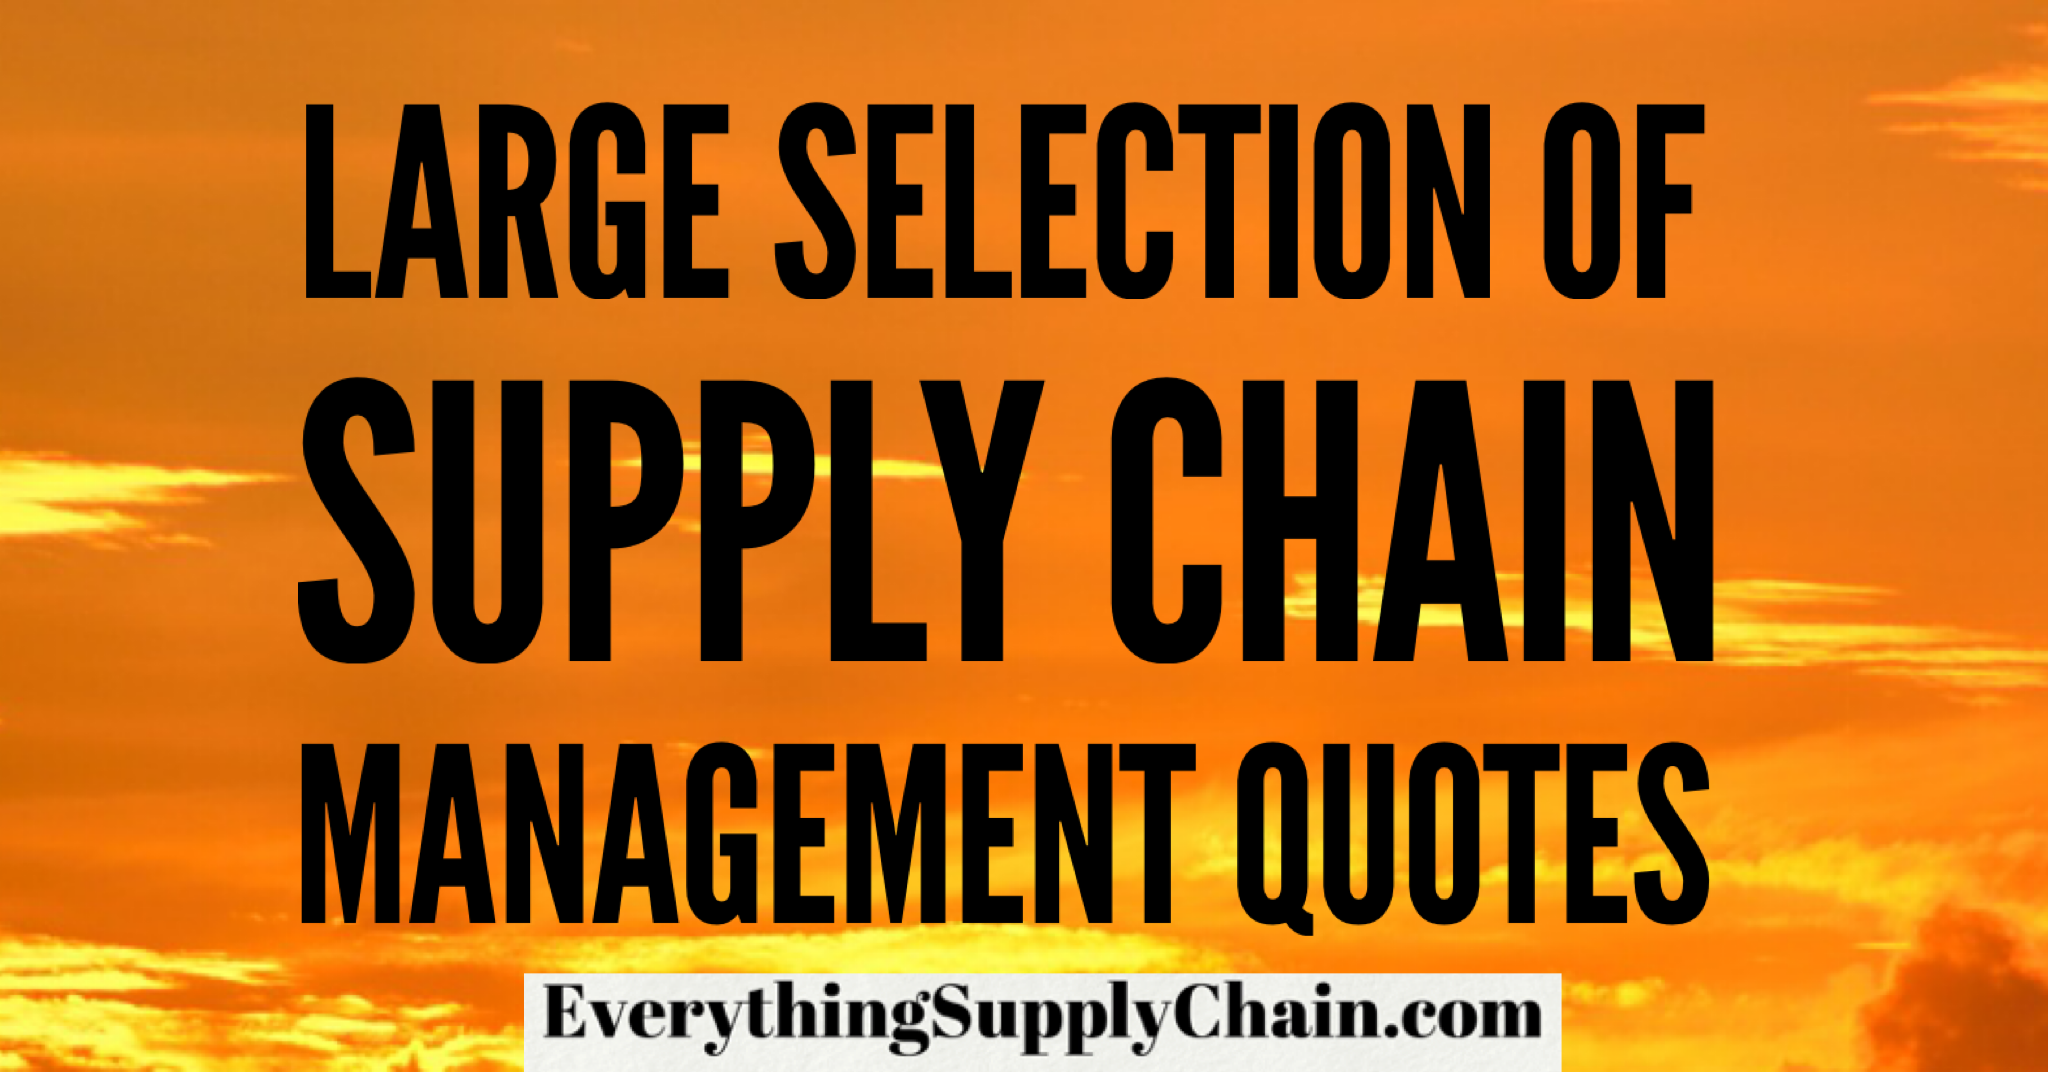 Supply Chain Management Quotes